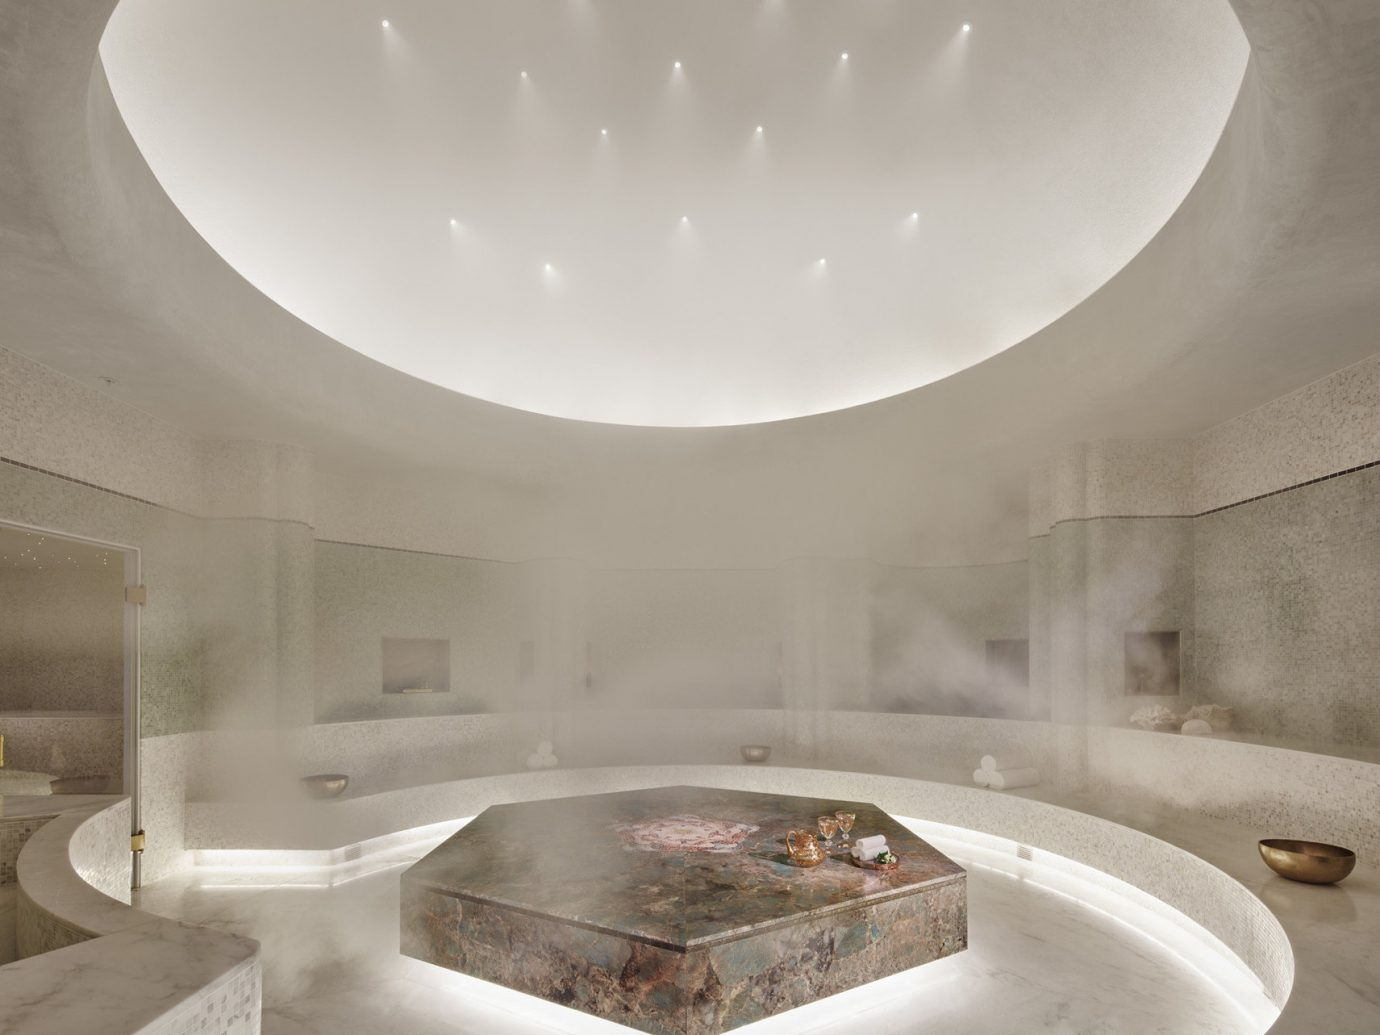 ambient lighting chic clean Health + Wellness Hotels Luxury marble private relaxation sauna Spa Spa Retreats steam room white indoor wall ceiling room floor daylighting bathtub lighting plumbing fixture bathroom swimming pool interior design shape Design jacuzzi table porcelain